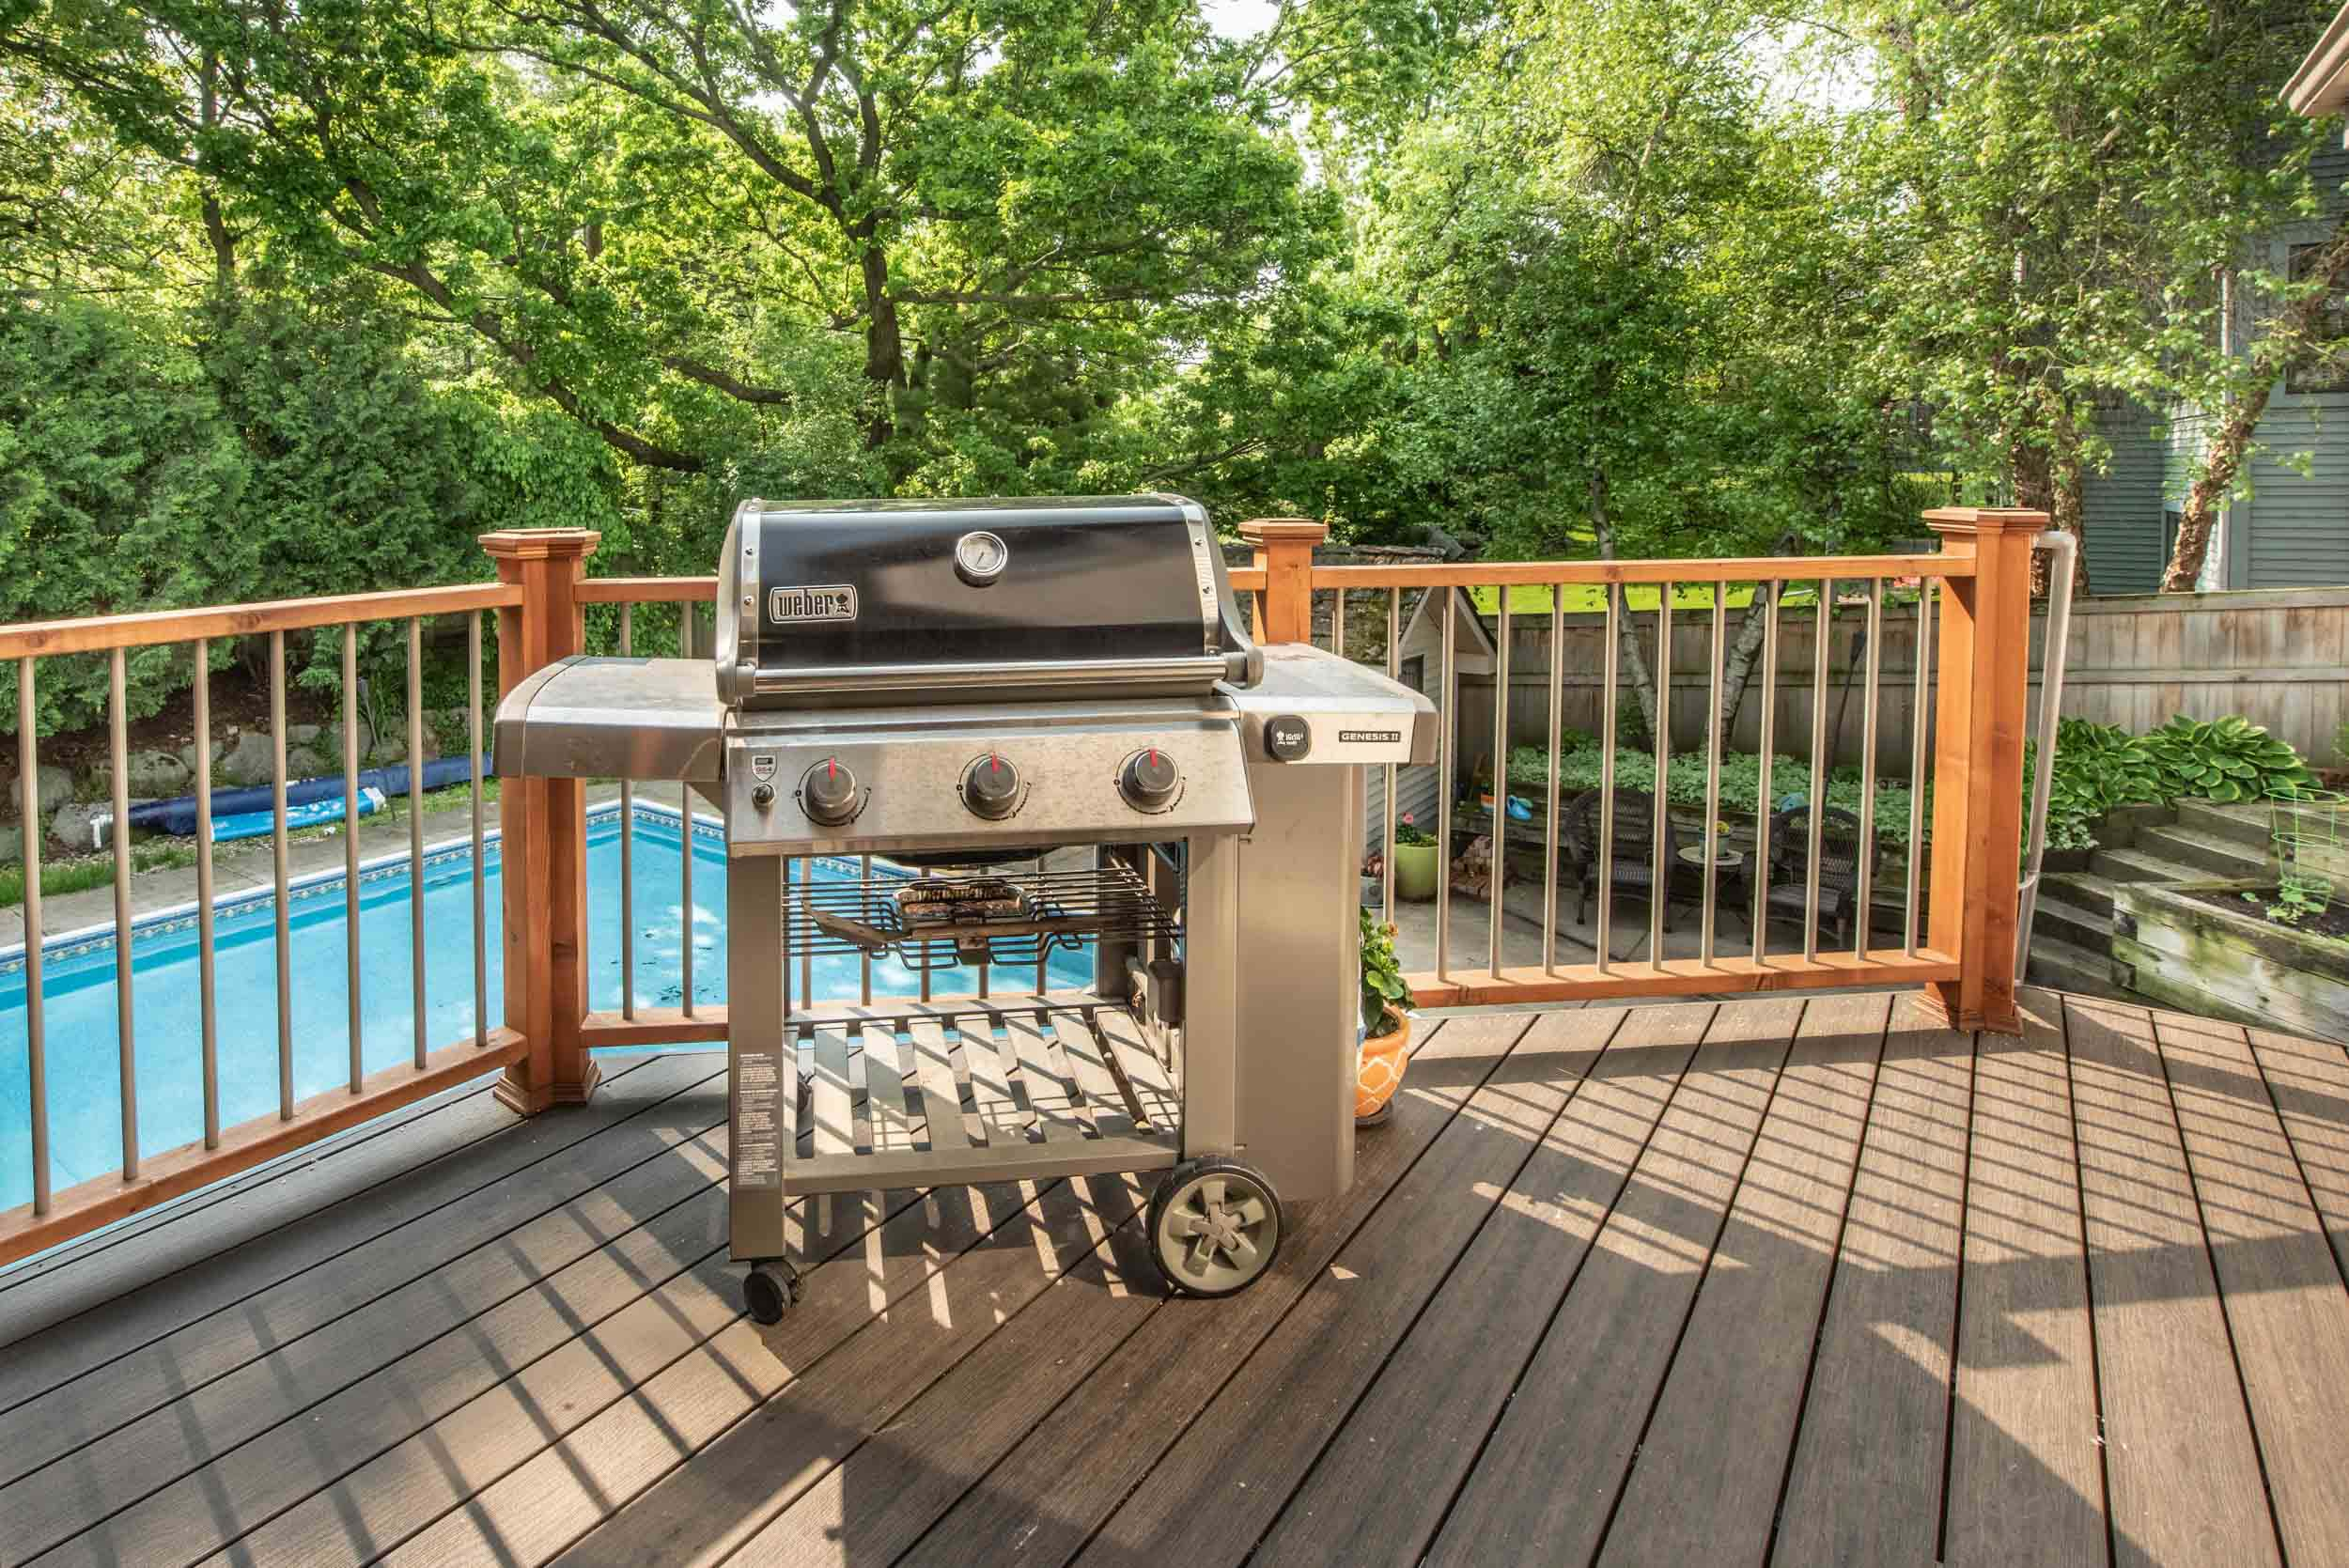 A grilling deck was placed outside the screened area.